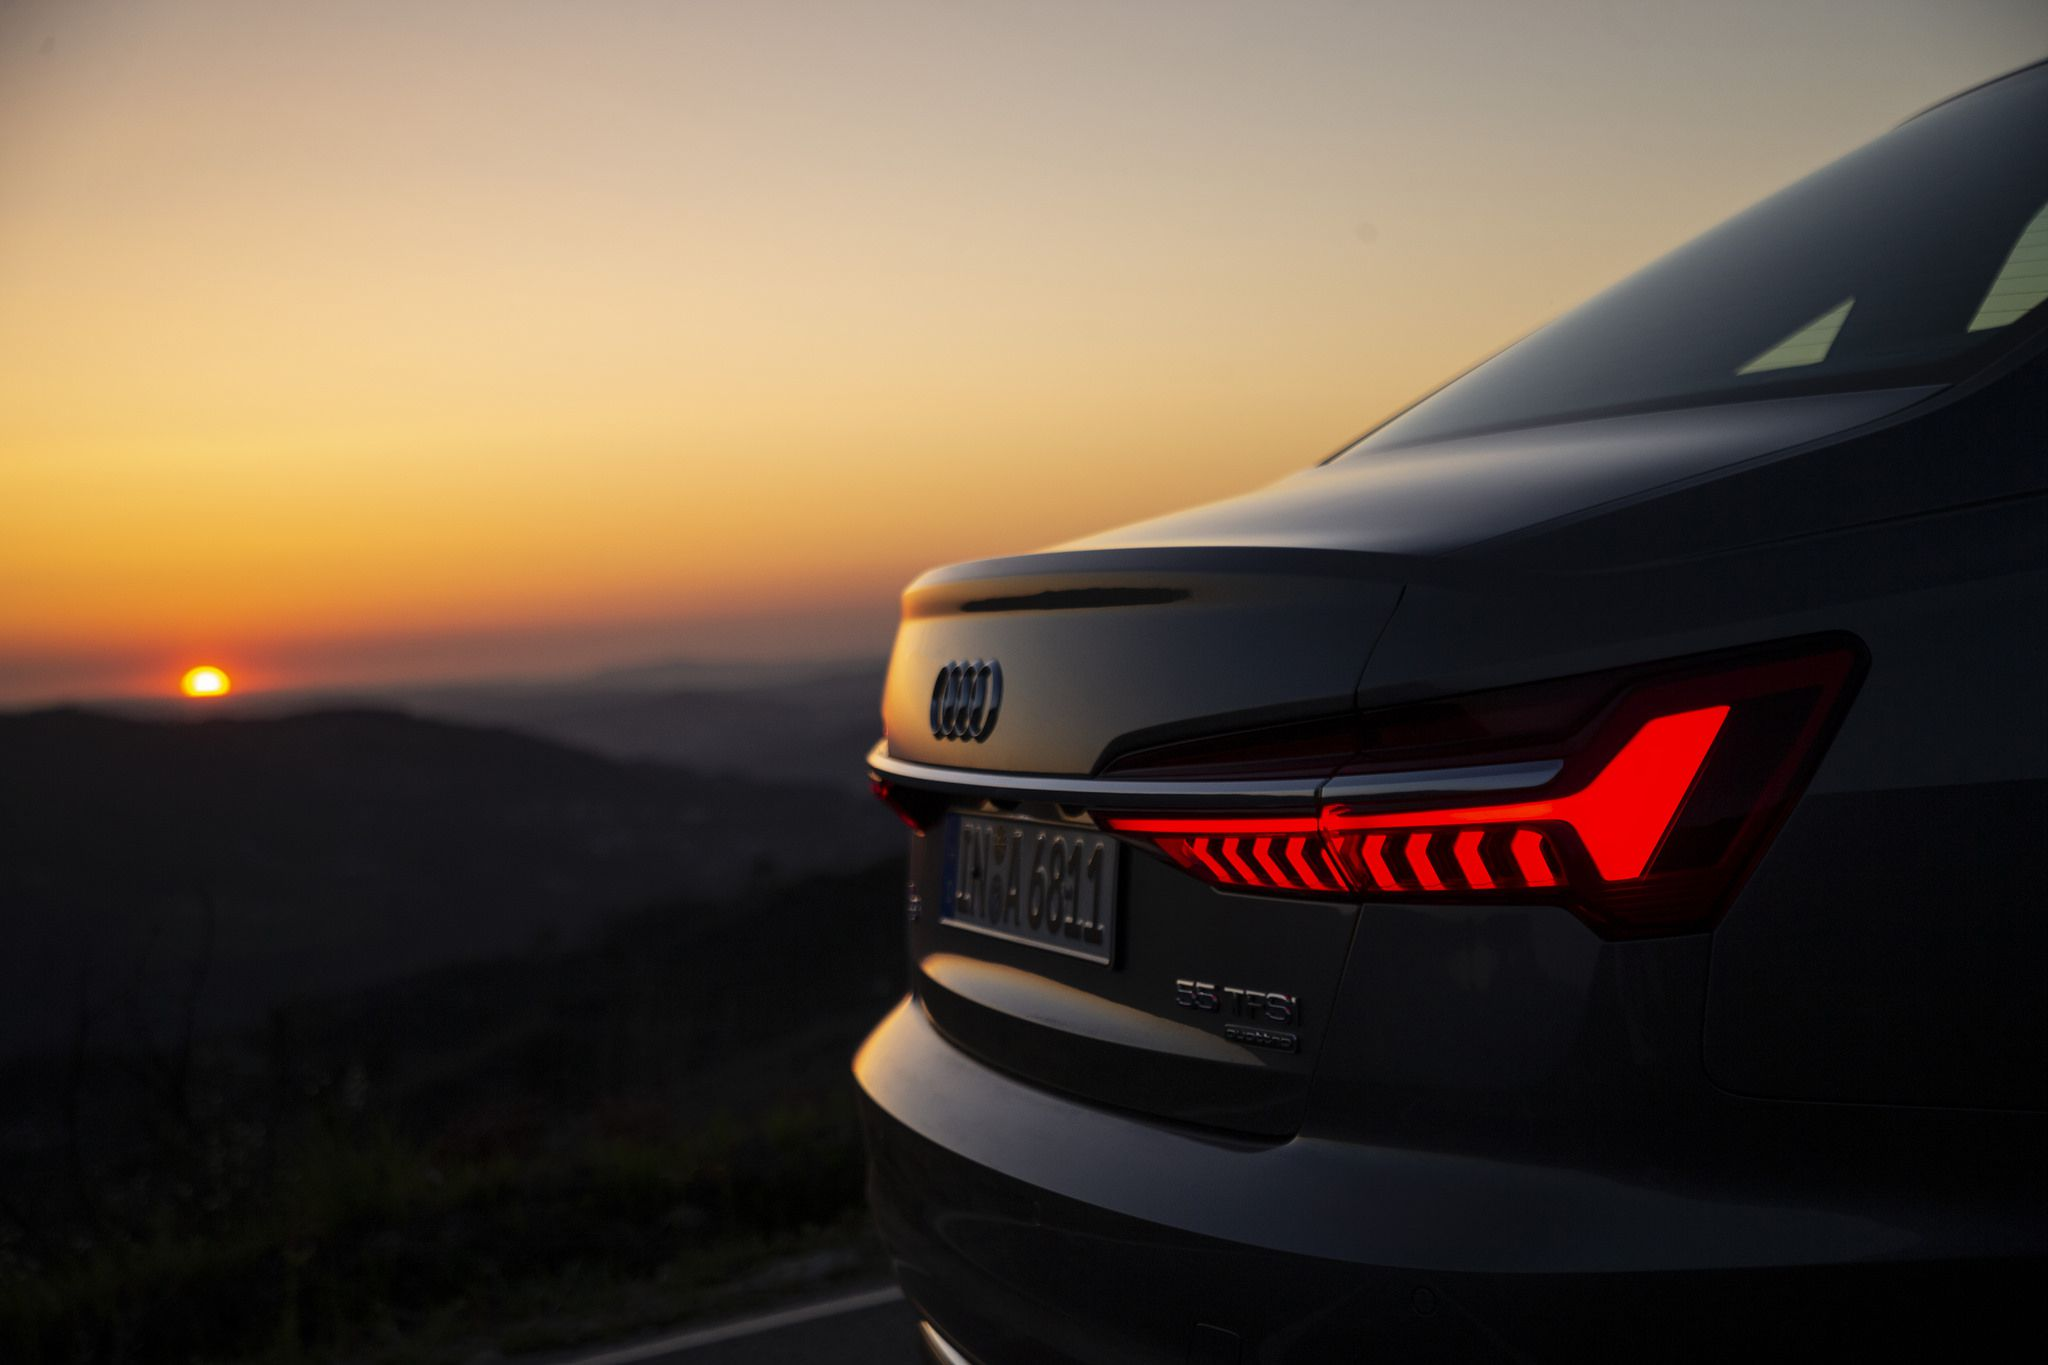 2019 Audi A6 at sunset